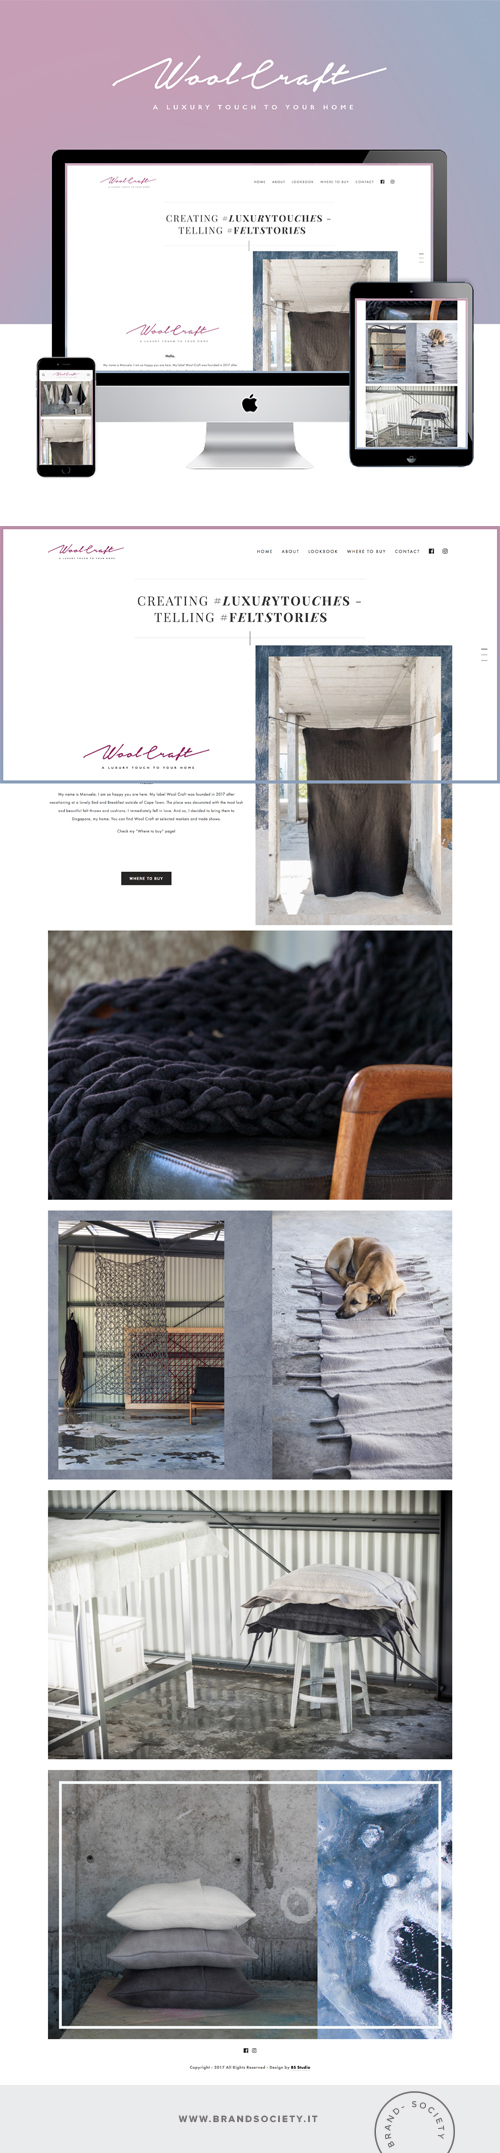 WOOL CRAFT    SERVICES  || SQUARESPACE WEBSITE | LOOKBOOK DESIGN | COLOR PALETTE